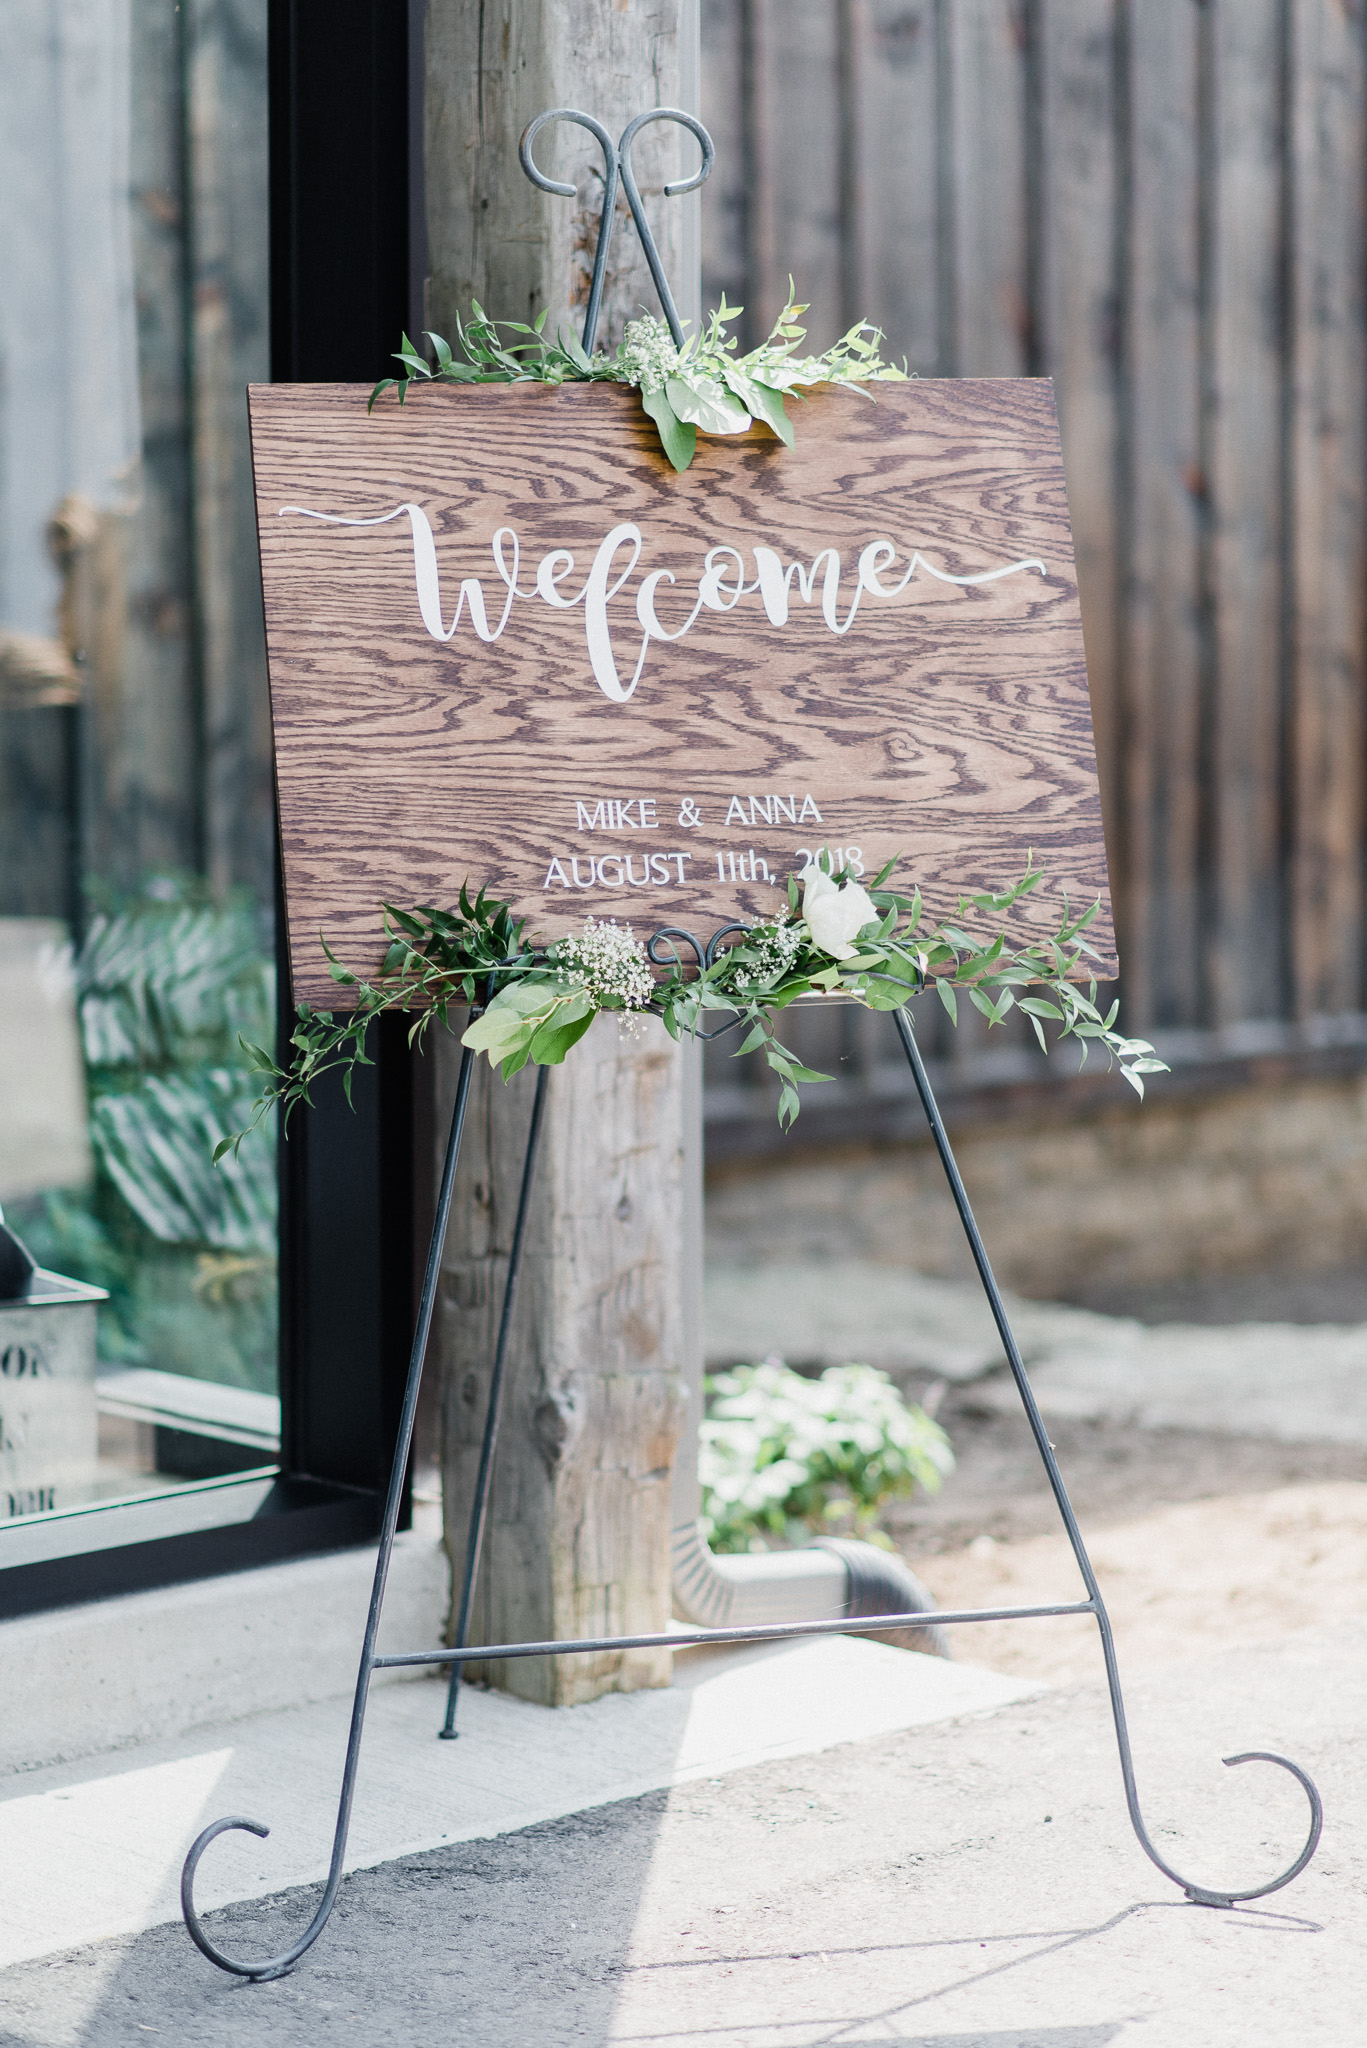 Wooden welcome sign | Summertime Wedding at Earth to Table Farm by Jenn Kavanagh Photography